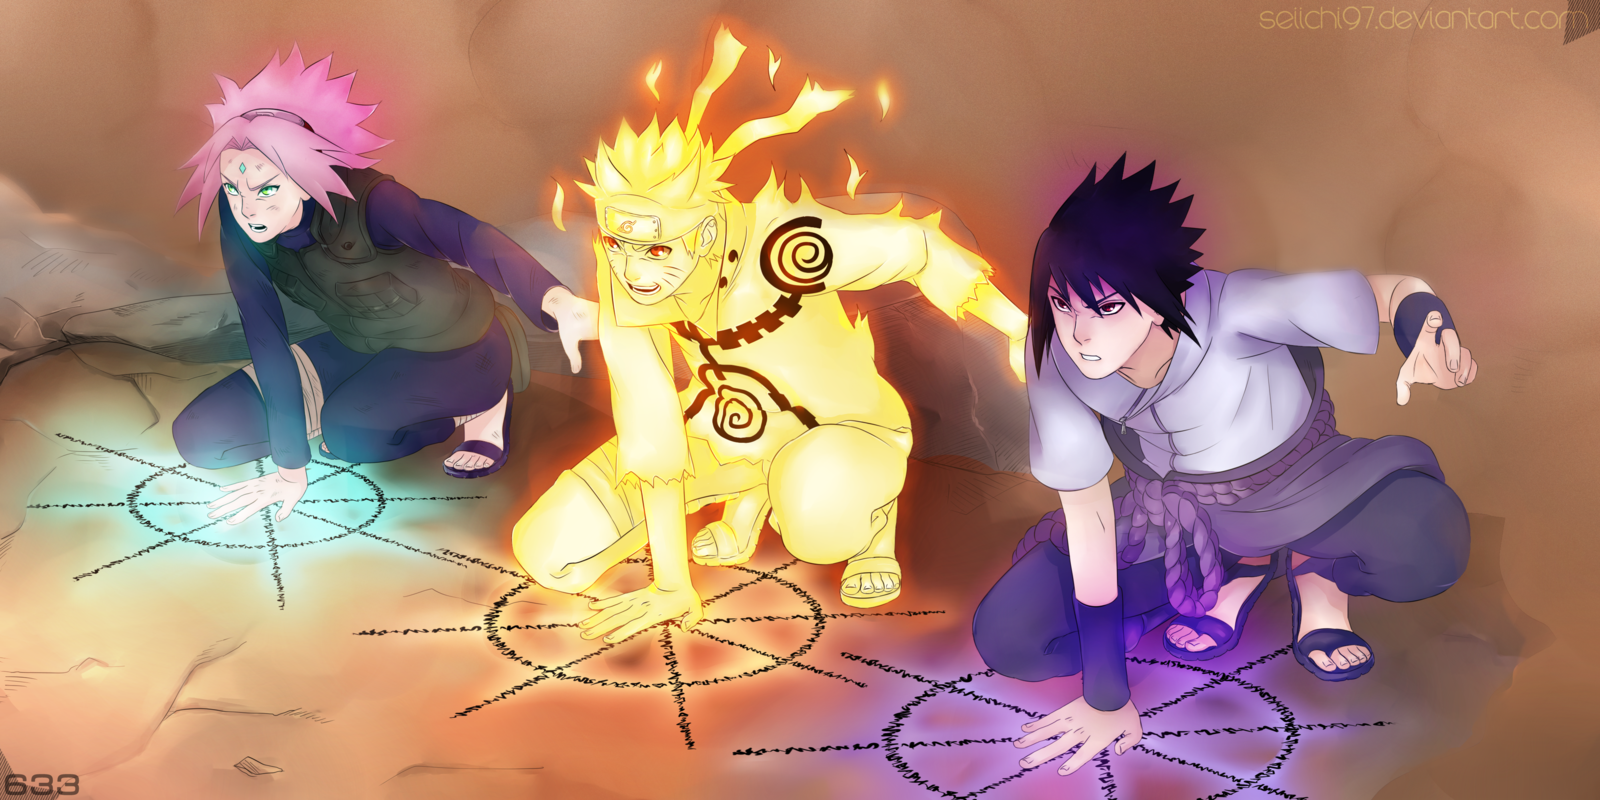 Photo of 633 – Team 7 [Color] by Seiichi97 on DeviantArt